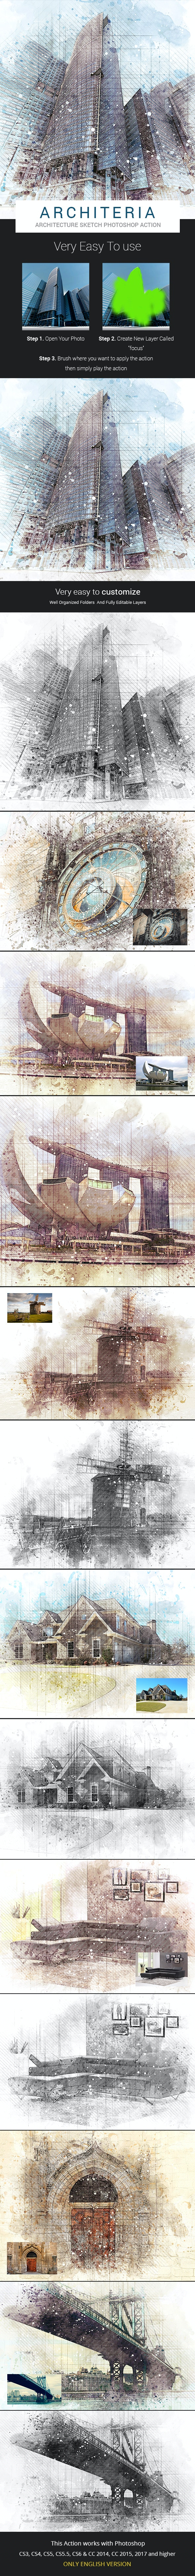 Architeria - Architecture Sketch Photoshop Action - Photo Effects Actions